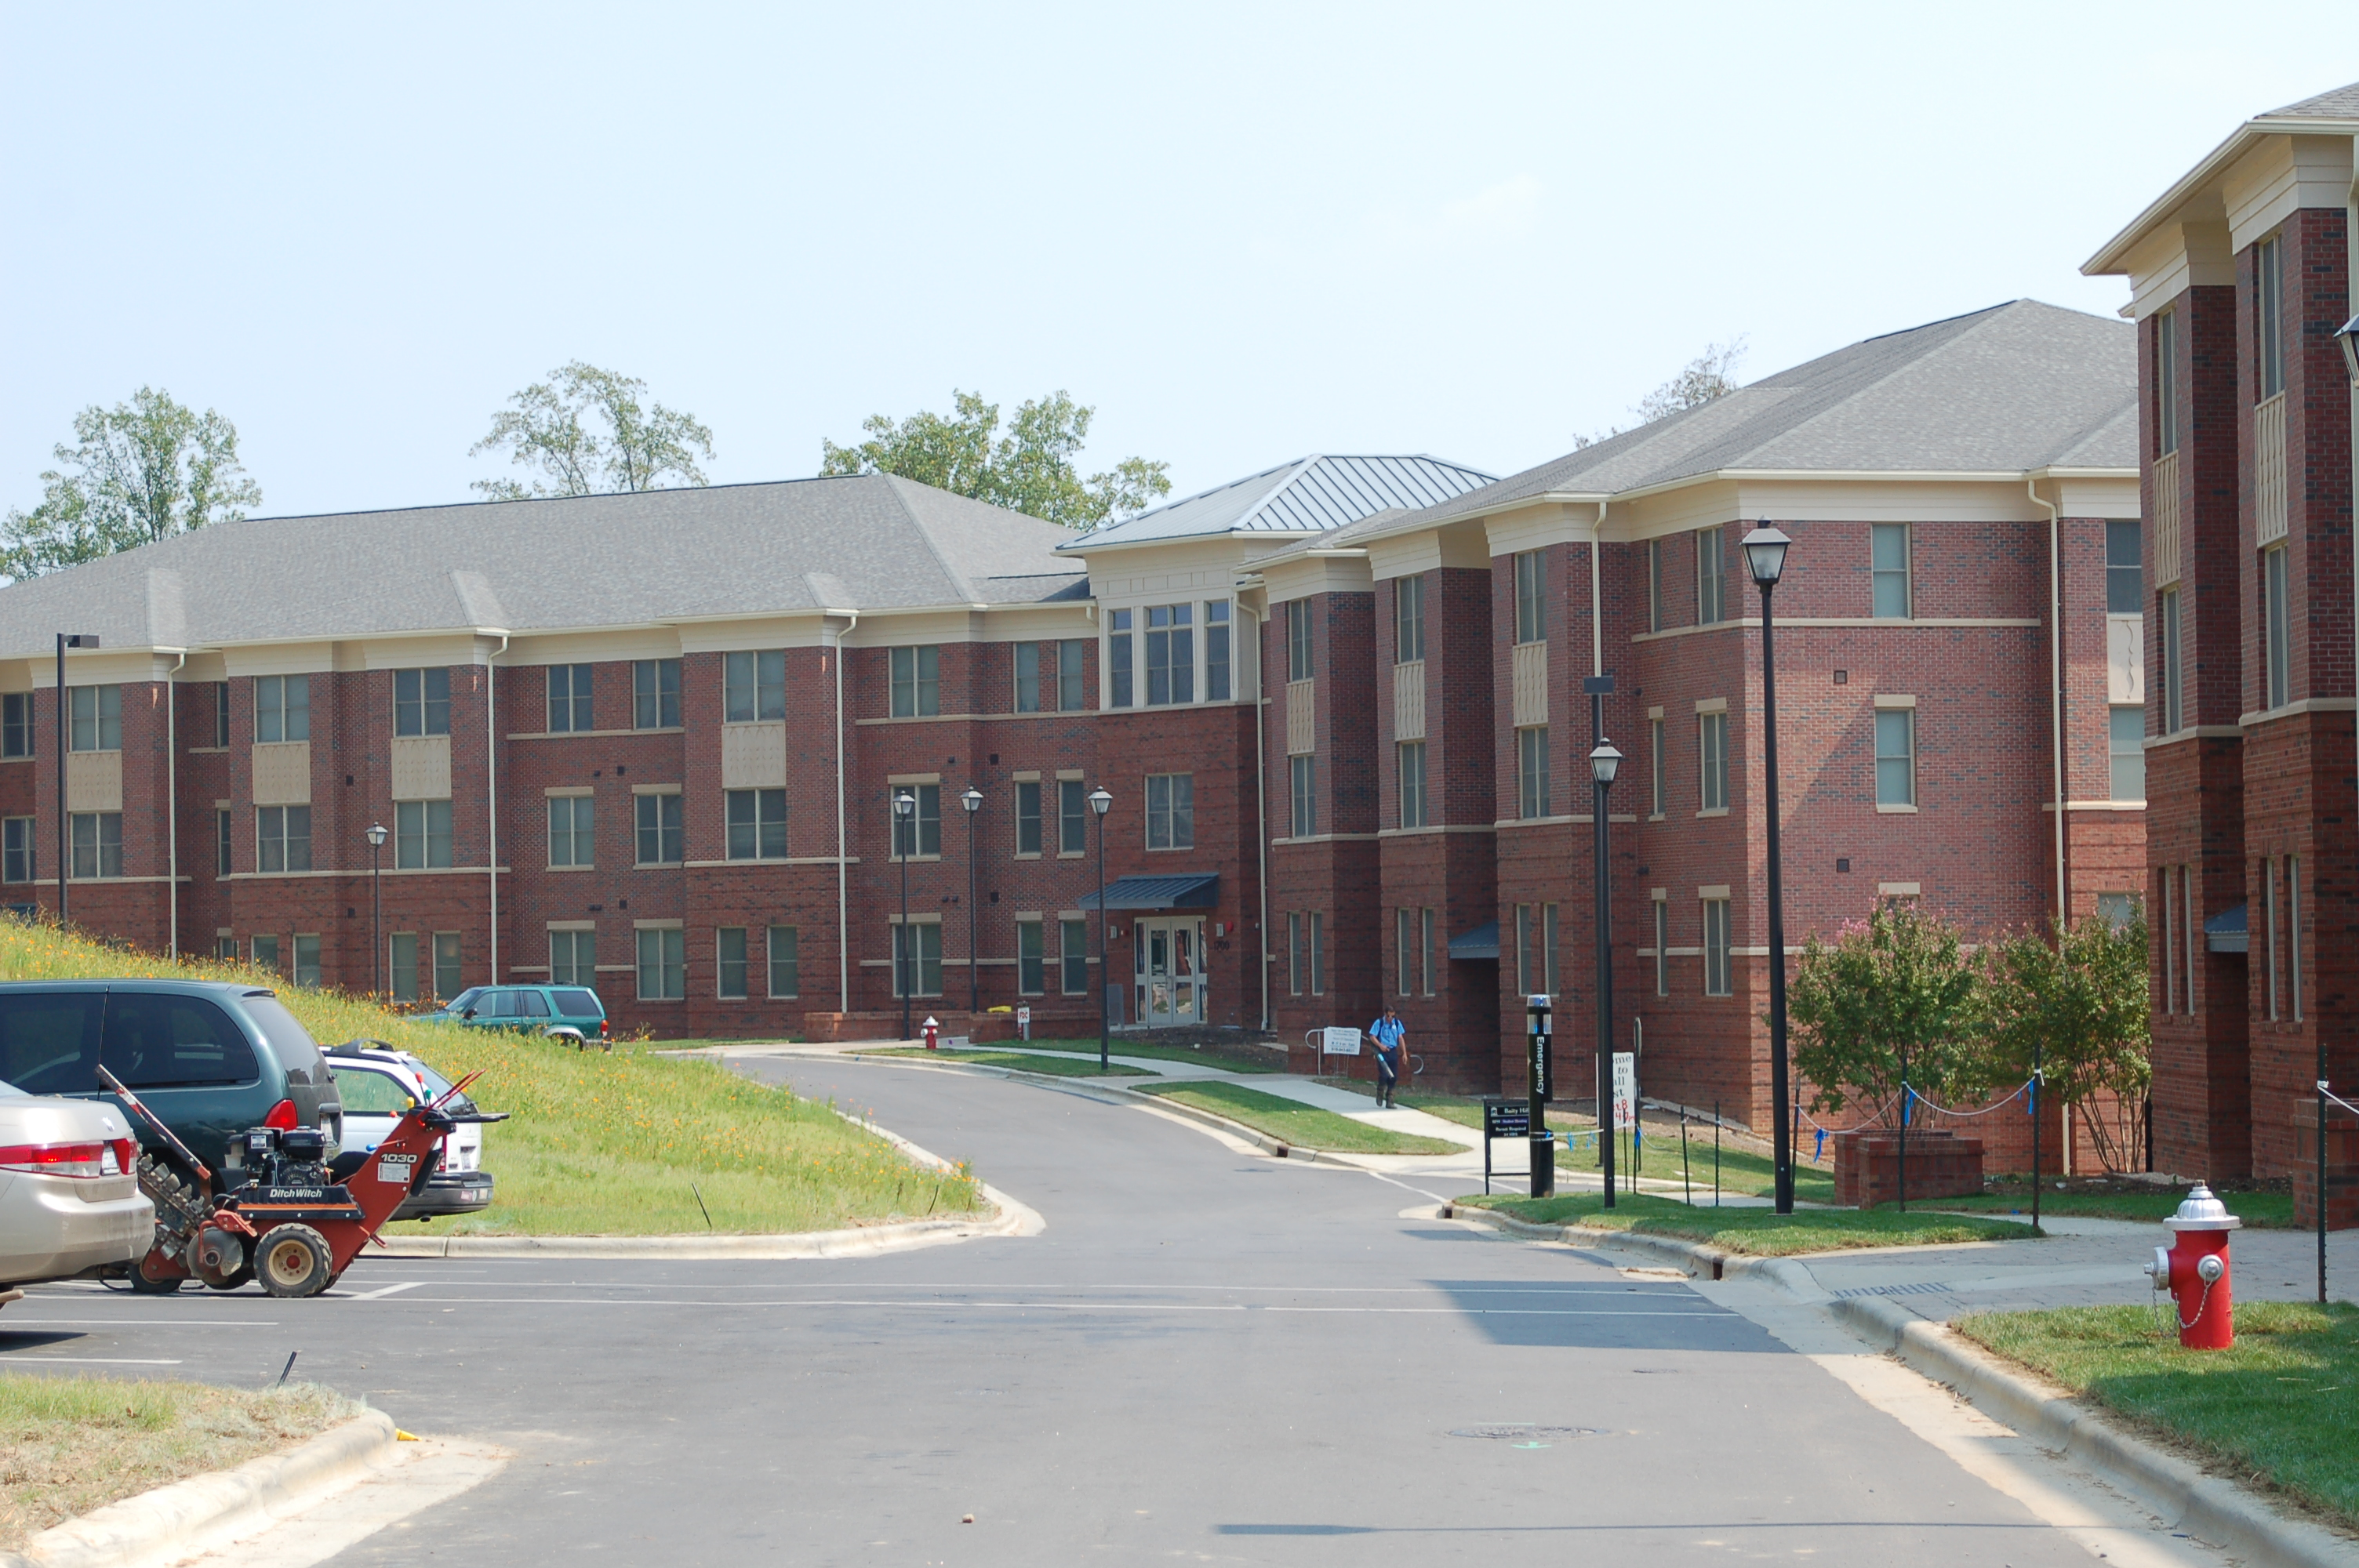 Contemporary Photo of Baity Hill 1700 Student Family Housing